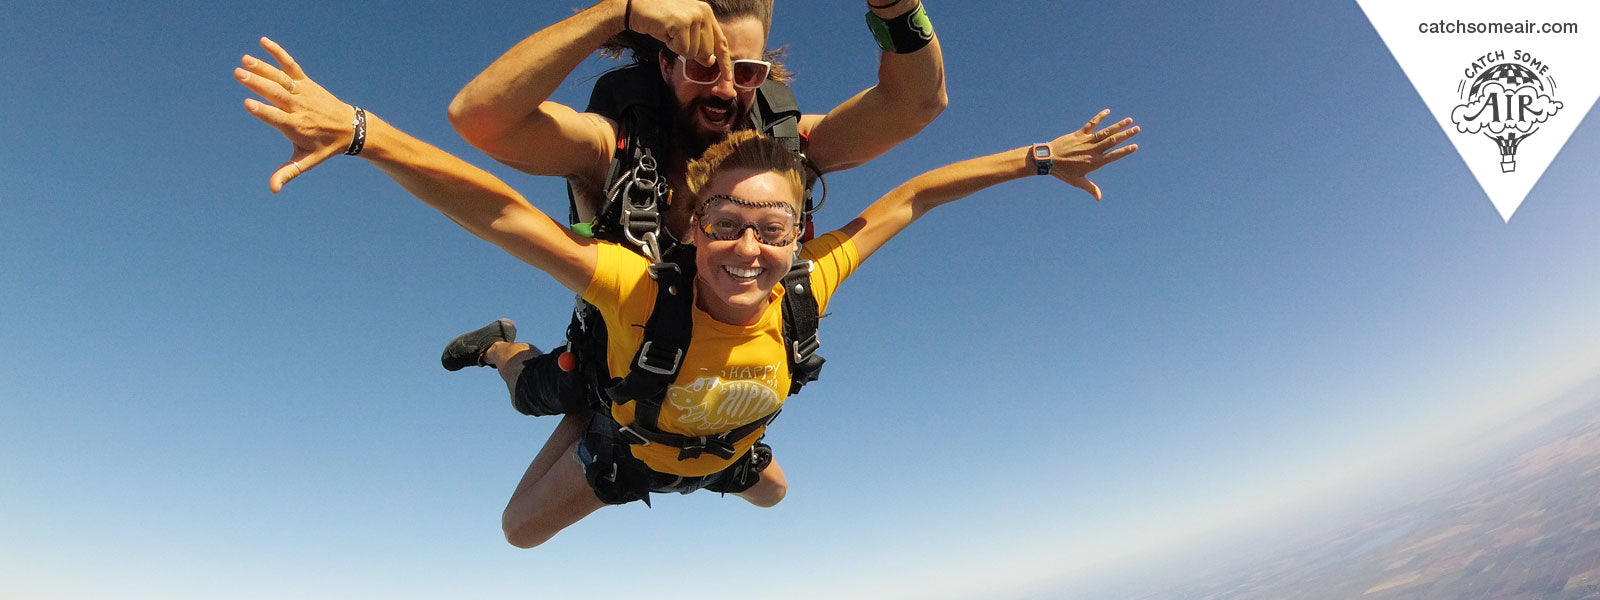 #88: Take young cancer survivors skydiving